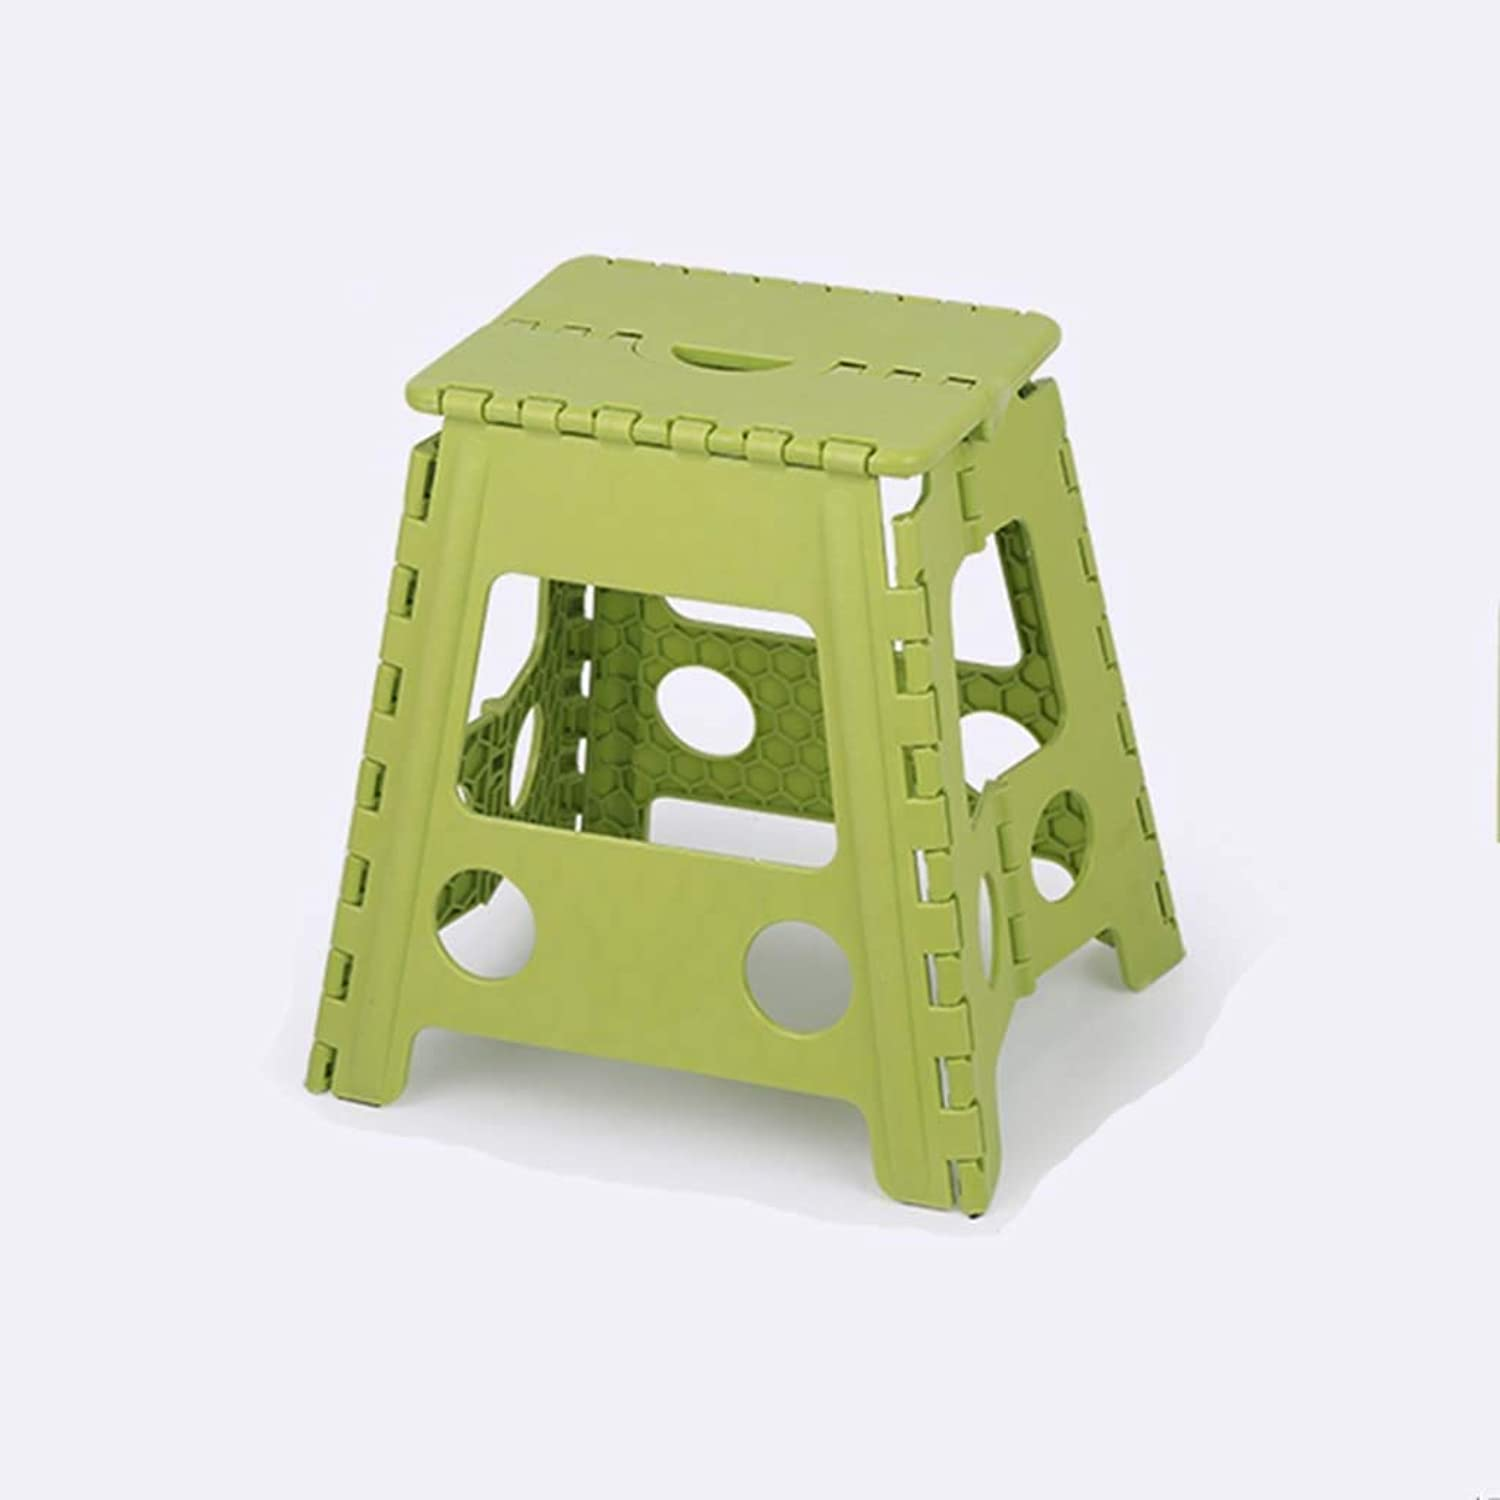 Stools Super Strong Plastic Folding Step Stool - Premium Compact and Lightweight Anti Slip Foldable Stools with Handles for Kids and Adults Latest Model (Size   XXL)